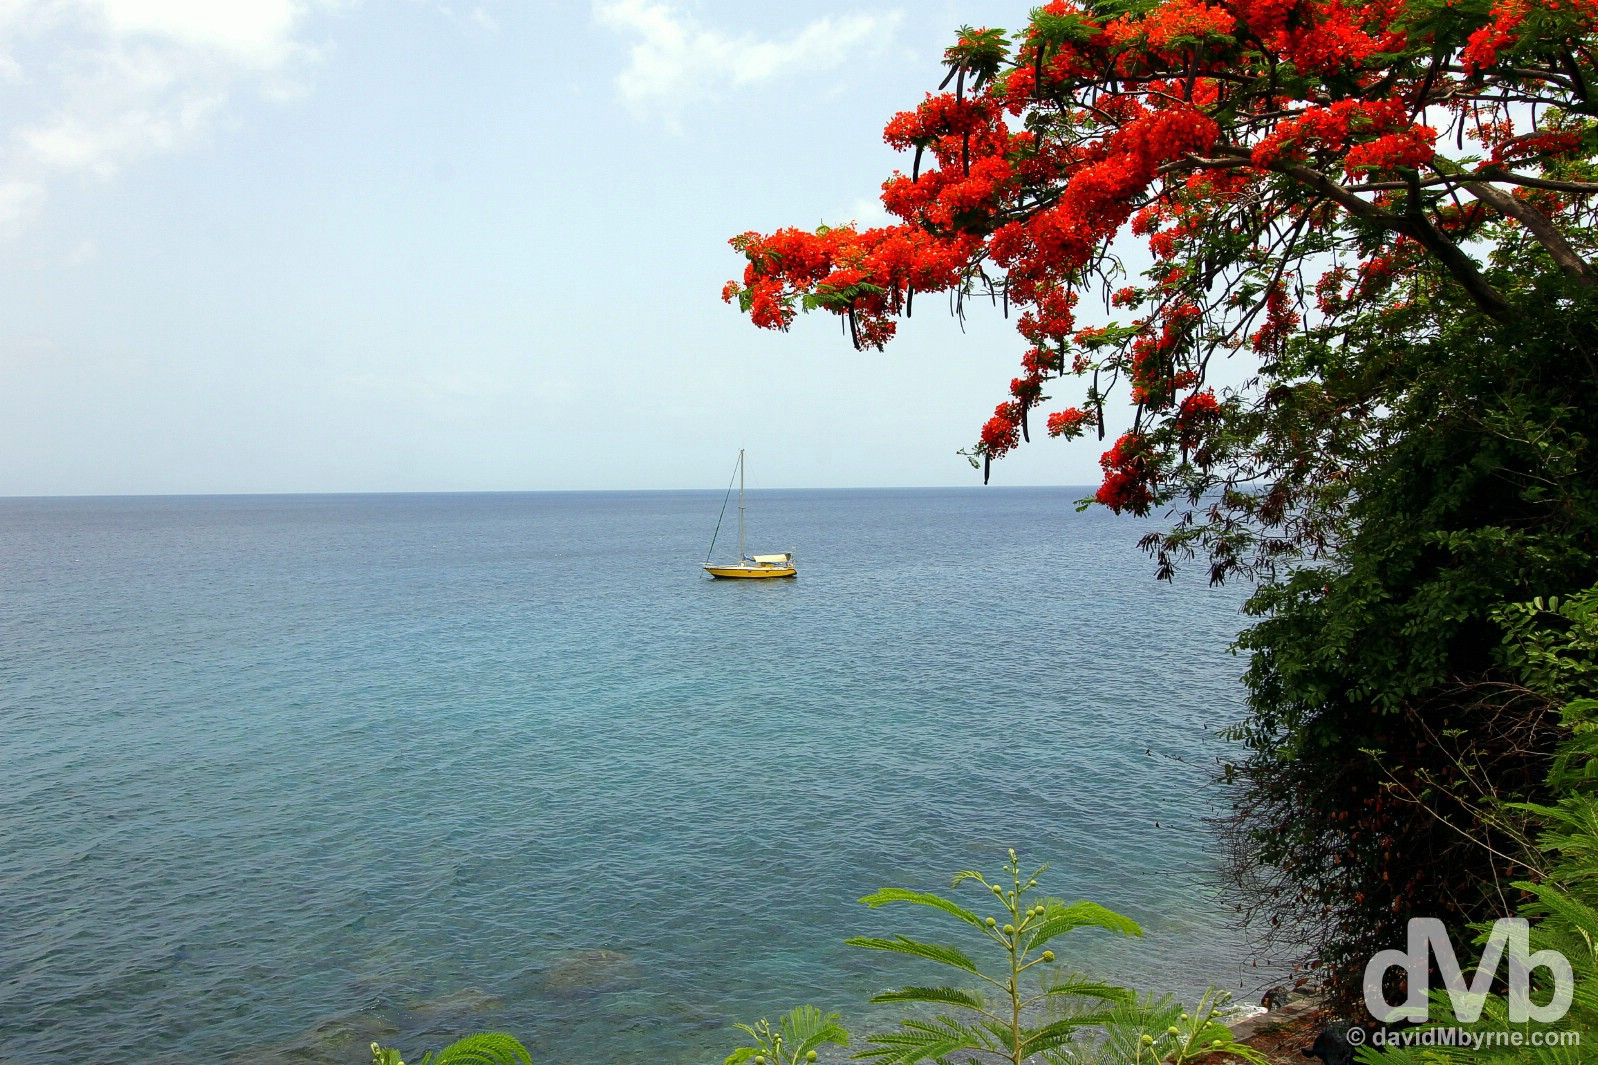 A boat offshore of Roseau, Dominica, Lesser Antilles. June 12, 2015.